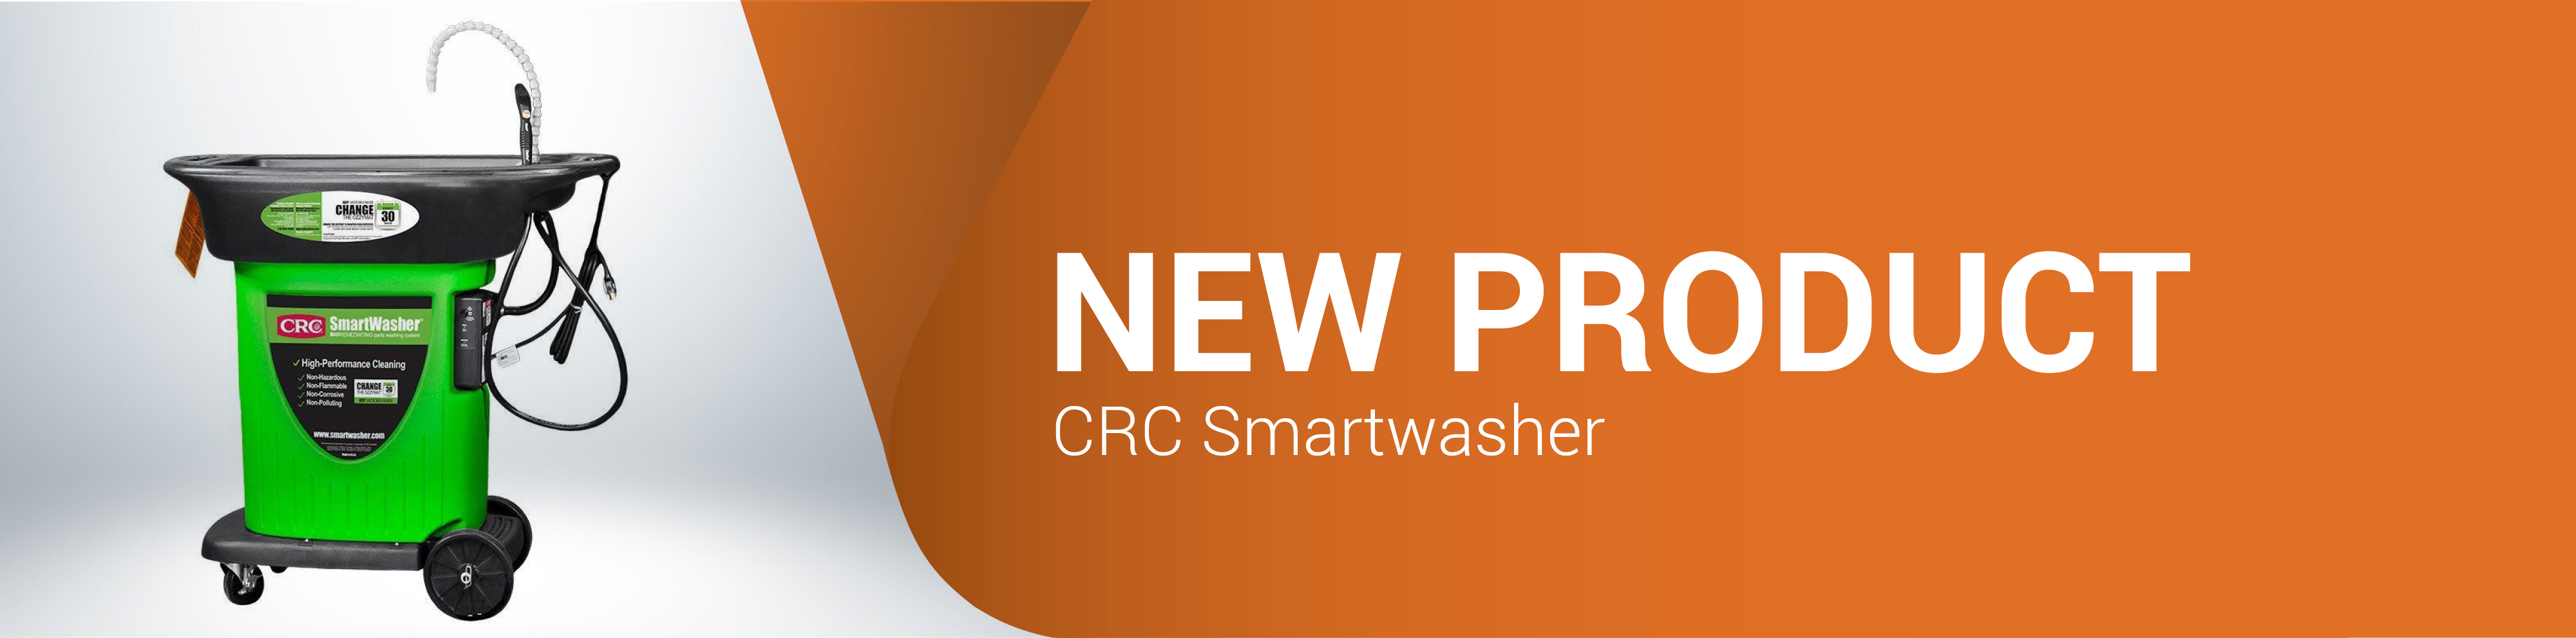 New Product- CRC Smartwasher